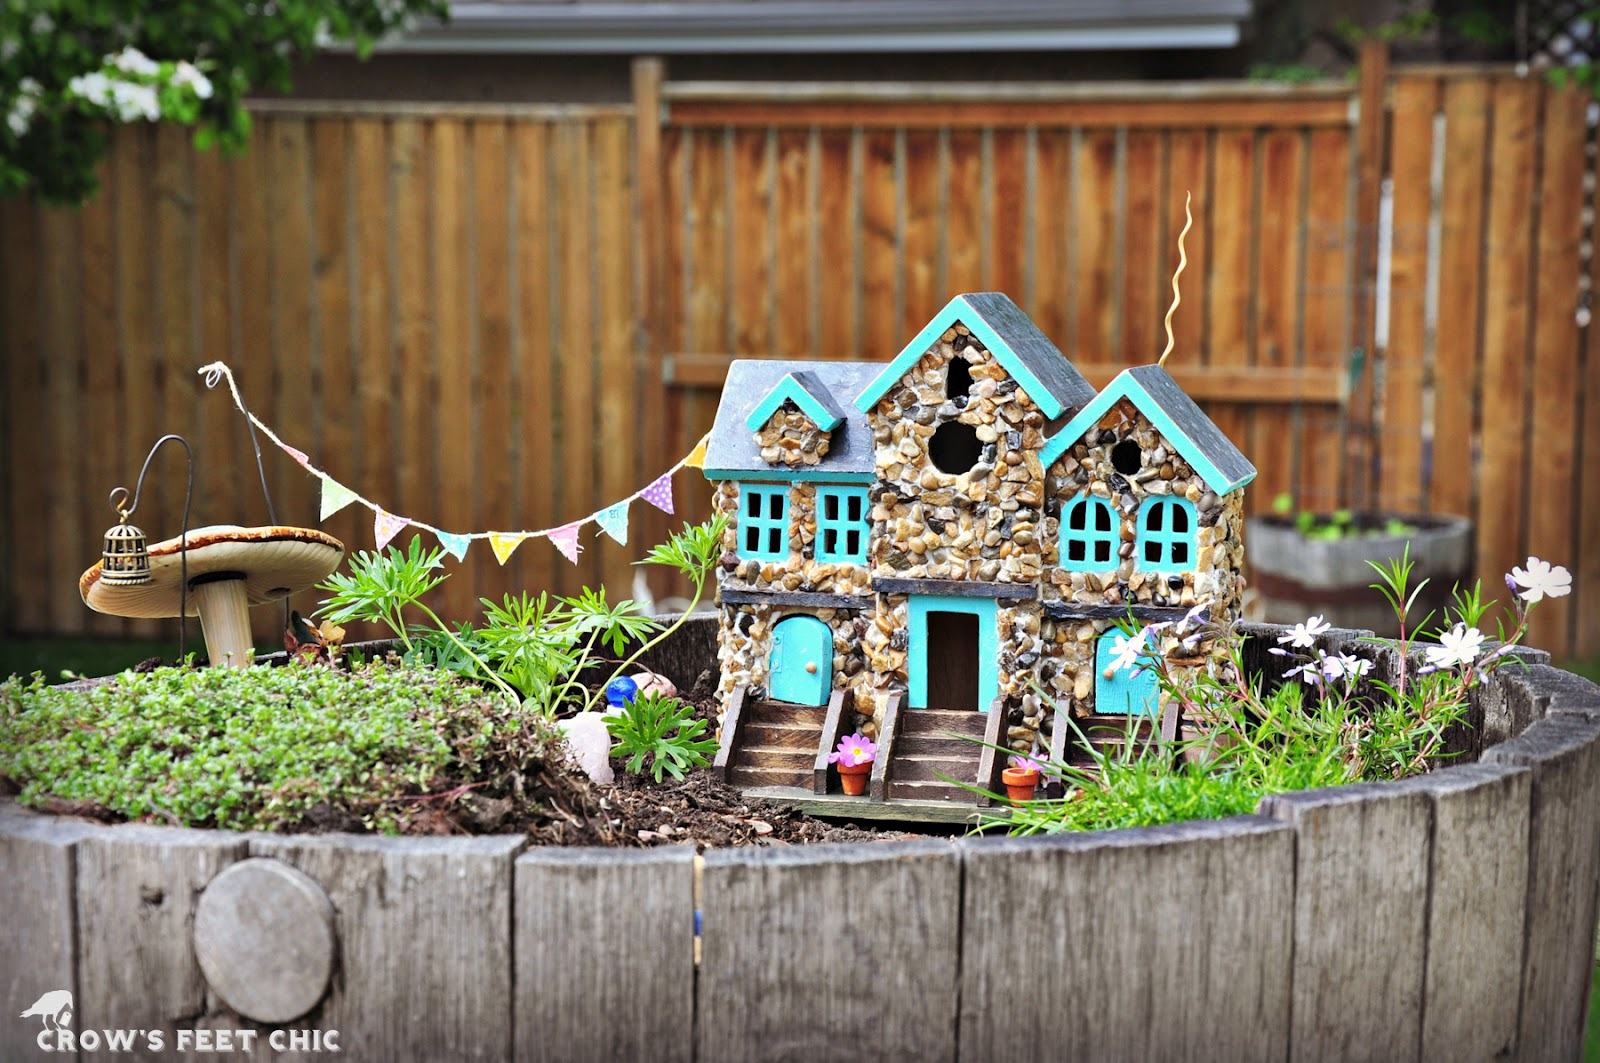 Our Fairy Garden Crows Feet Chic